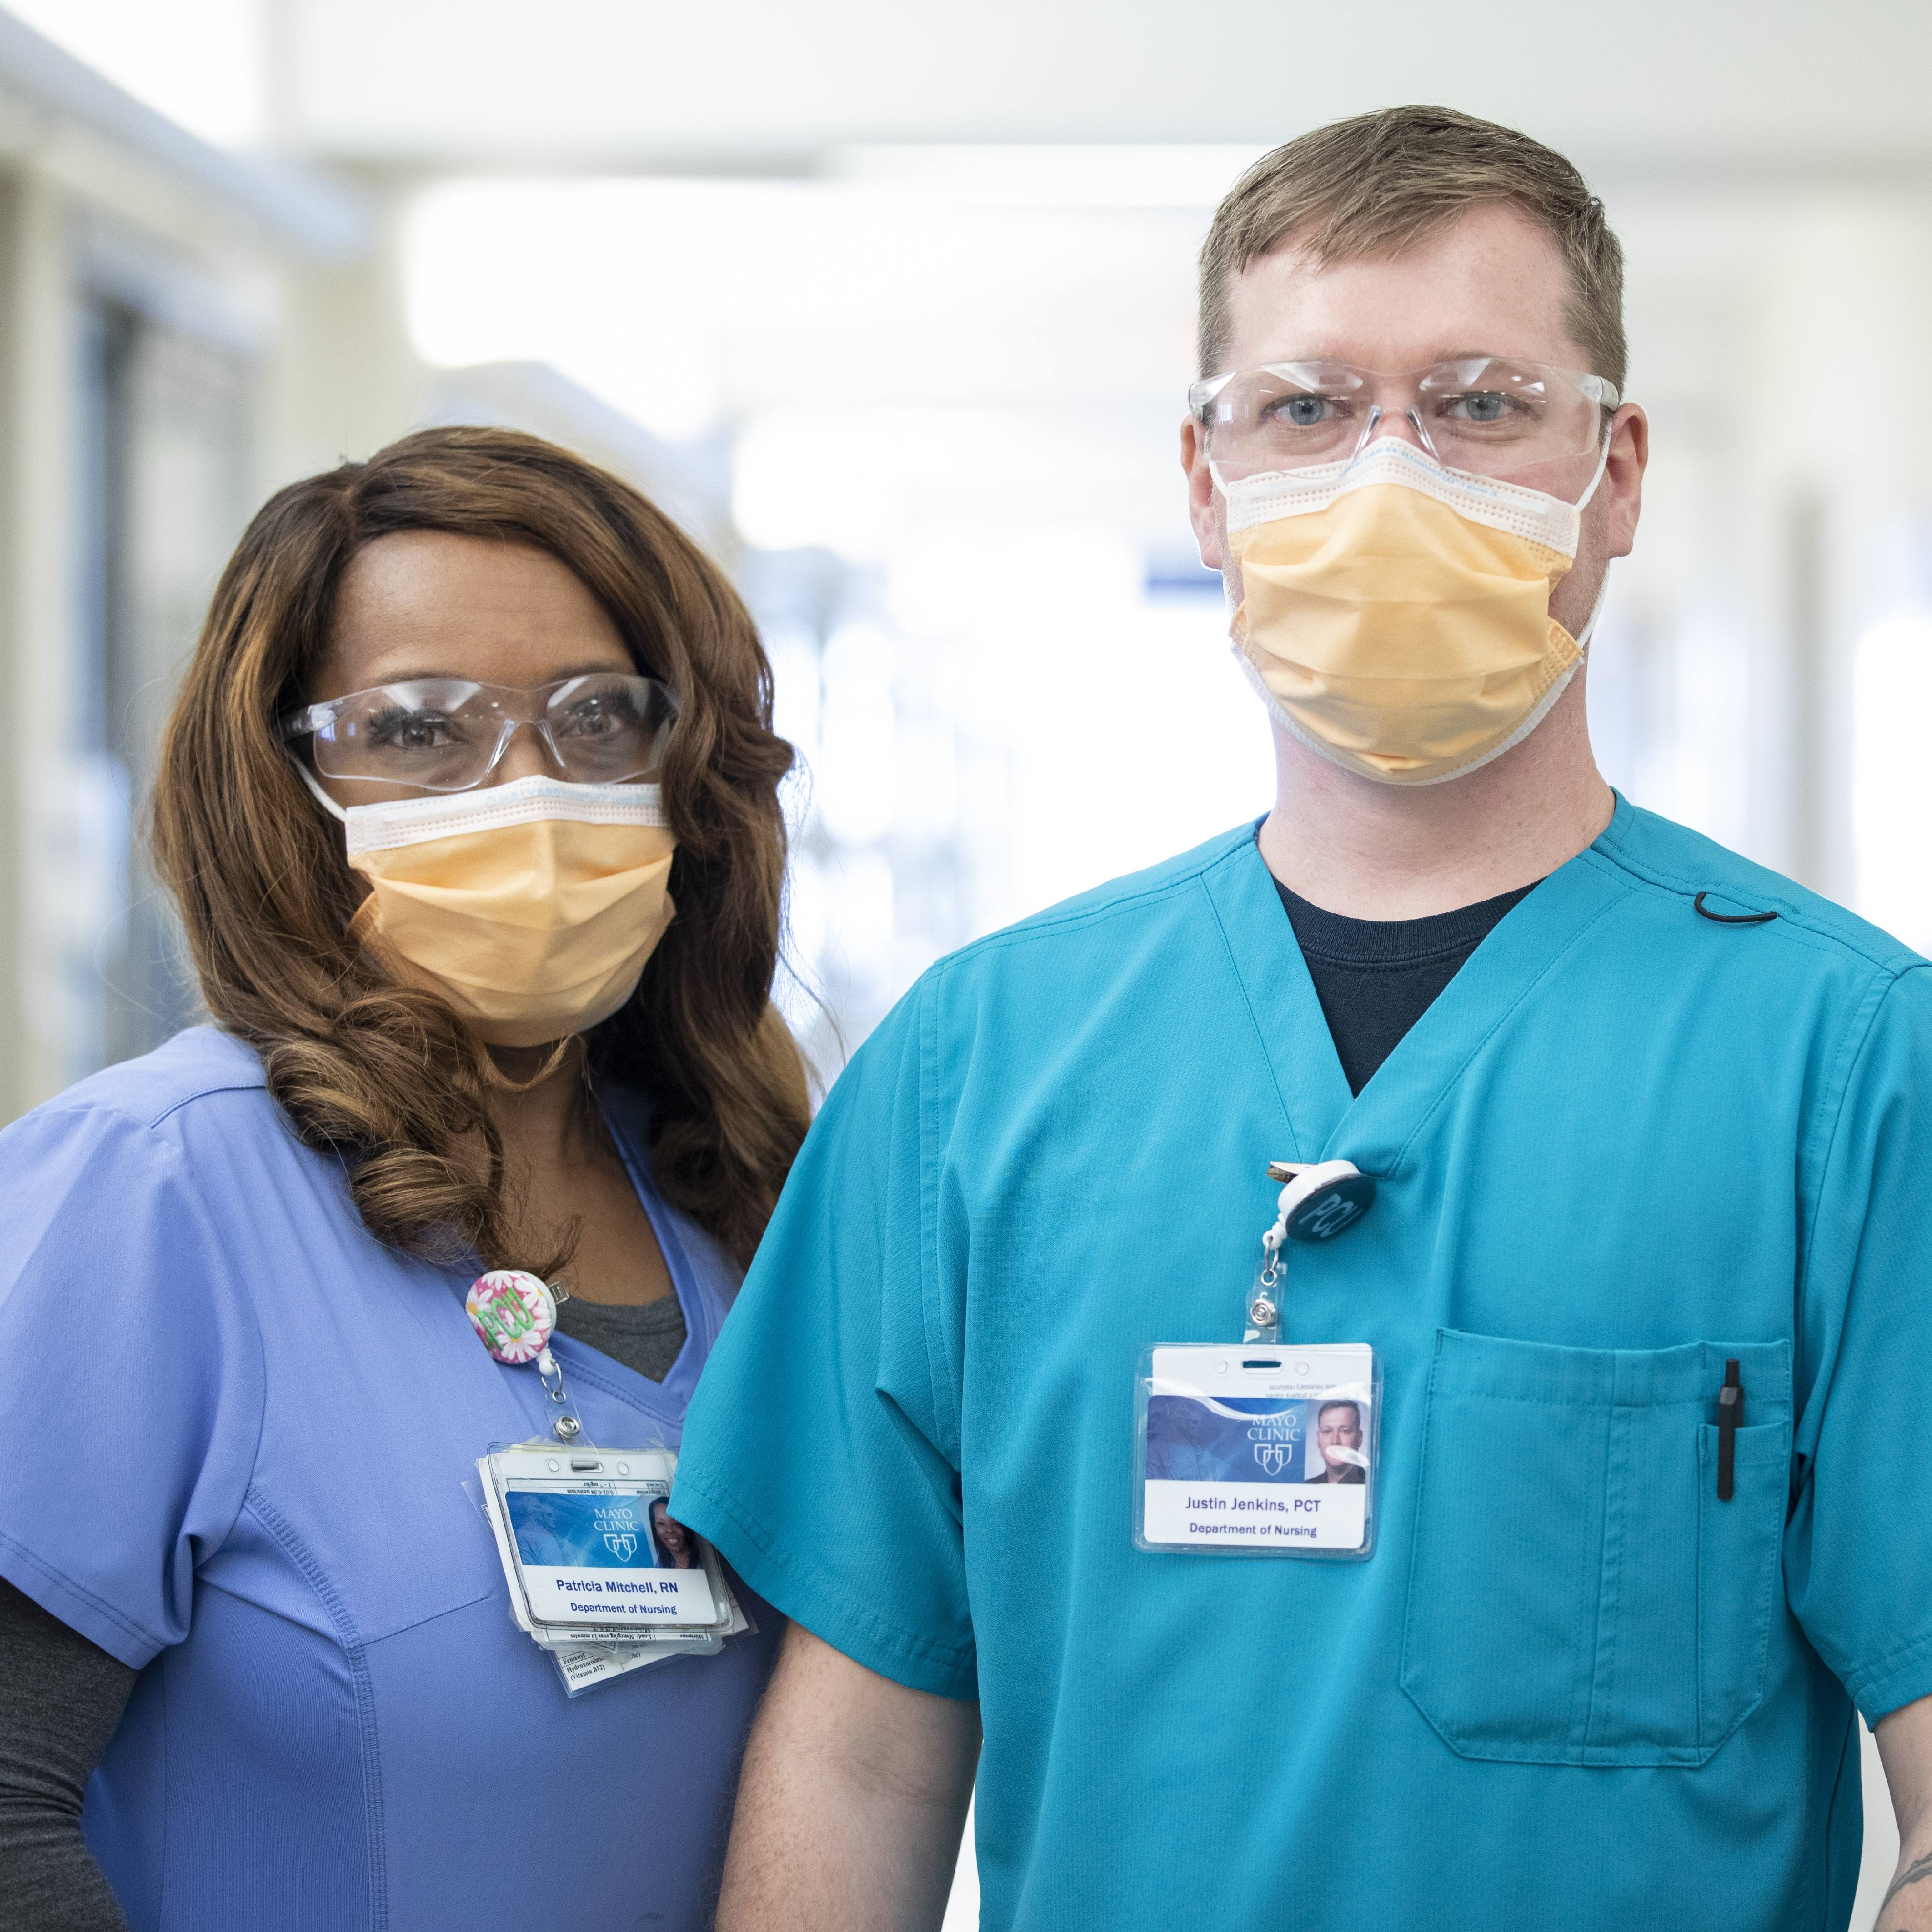 two Mayo Clinic employees in medical scrubs wearing face masks and eye coverings